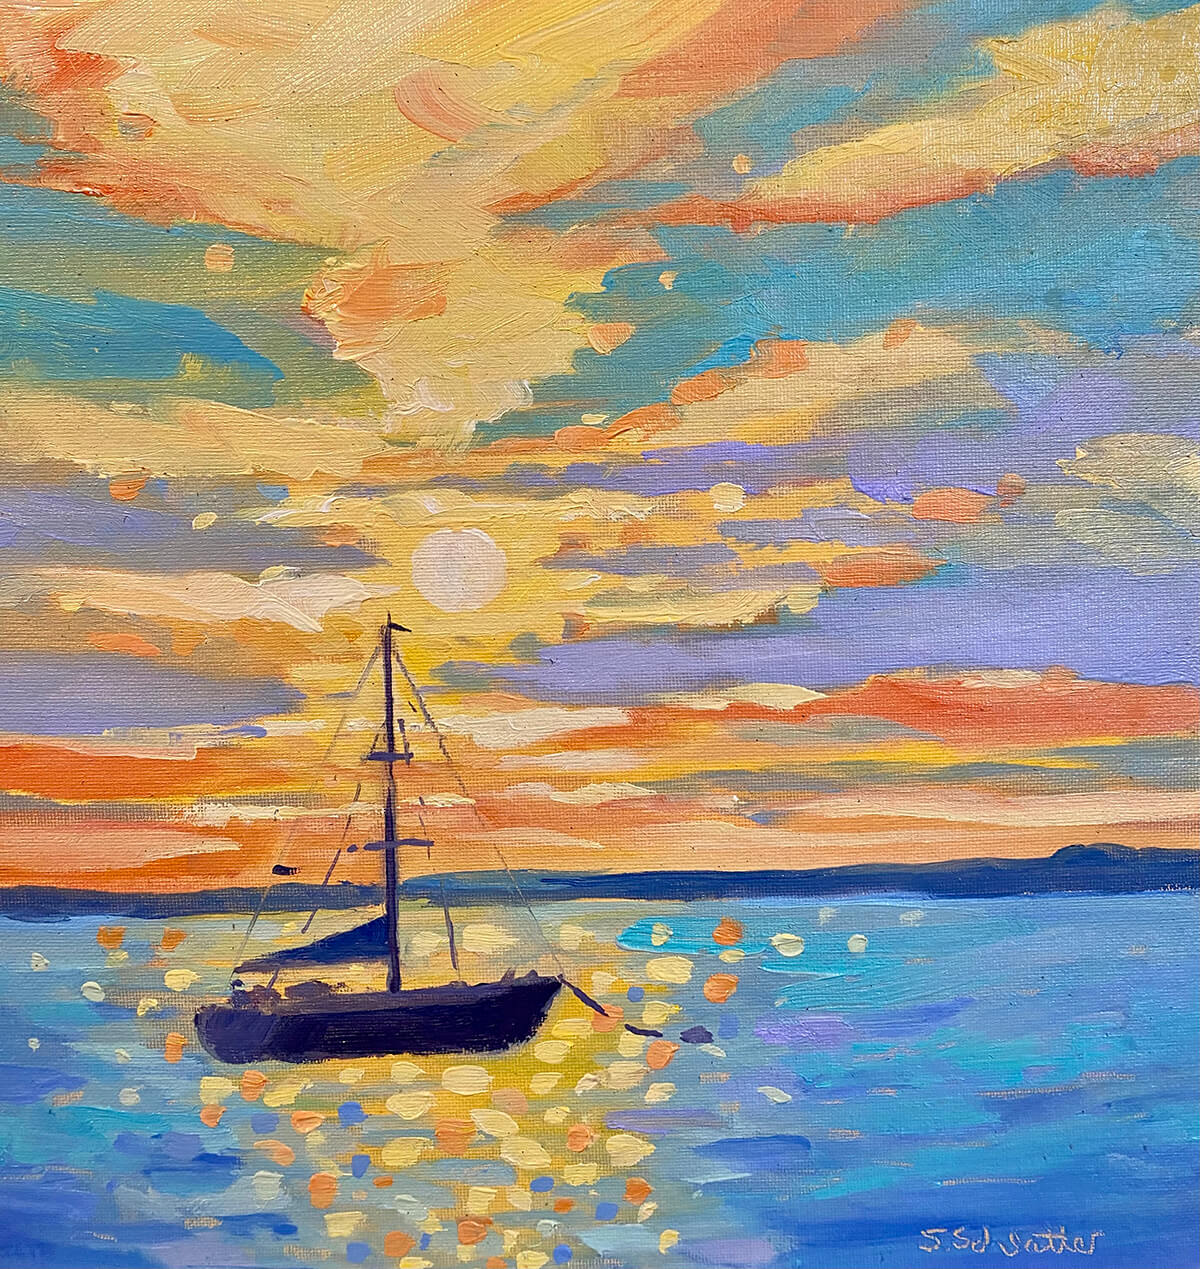 One Particular Harbor painting by Stephanie Schlatter